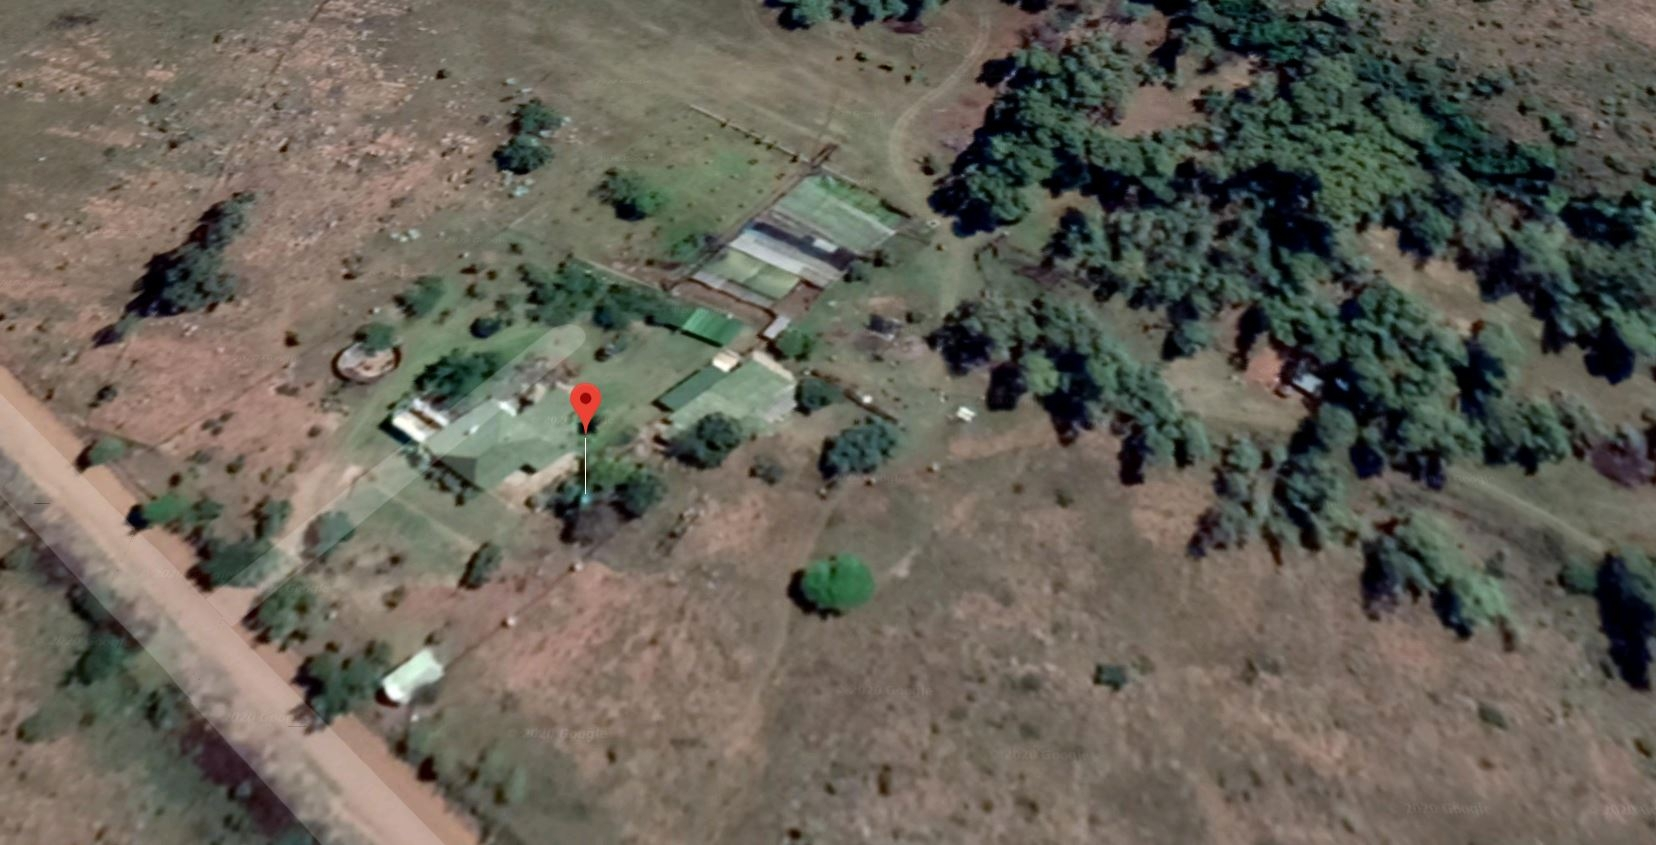 Aerial view of the farmhouse and immediate surroundings